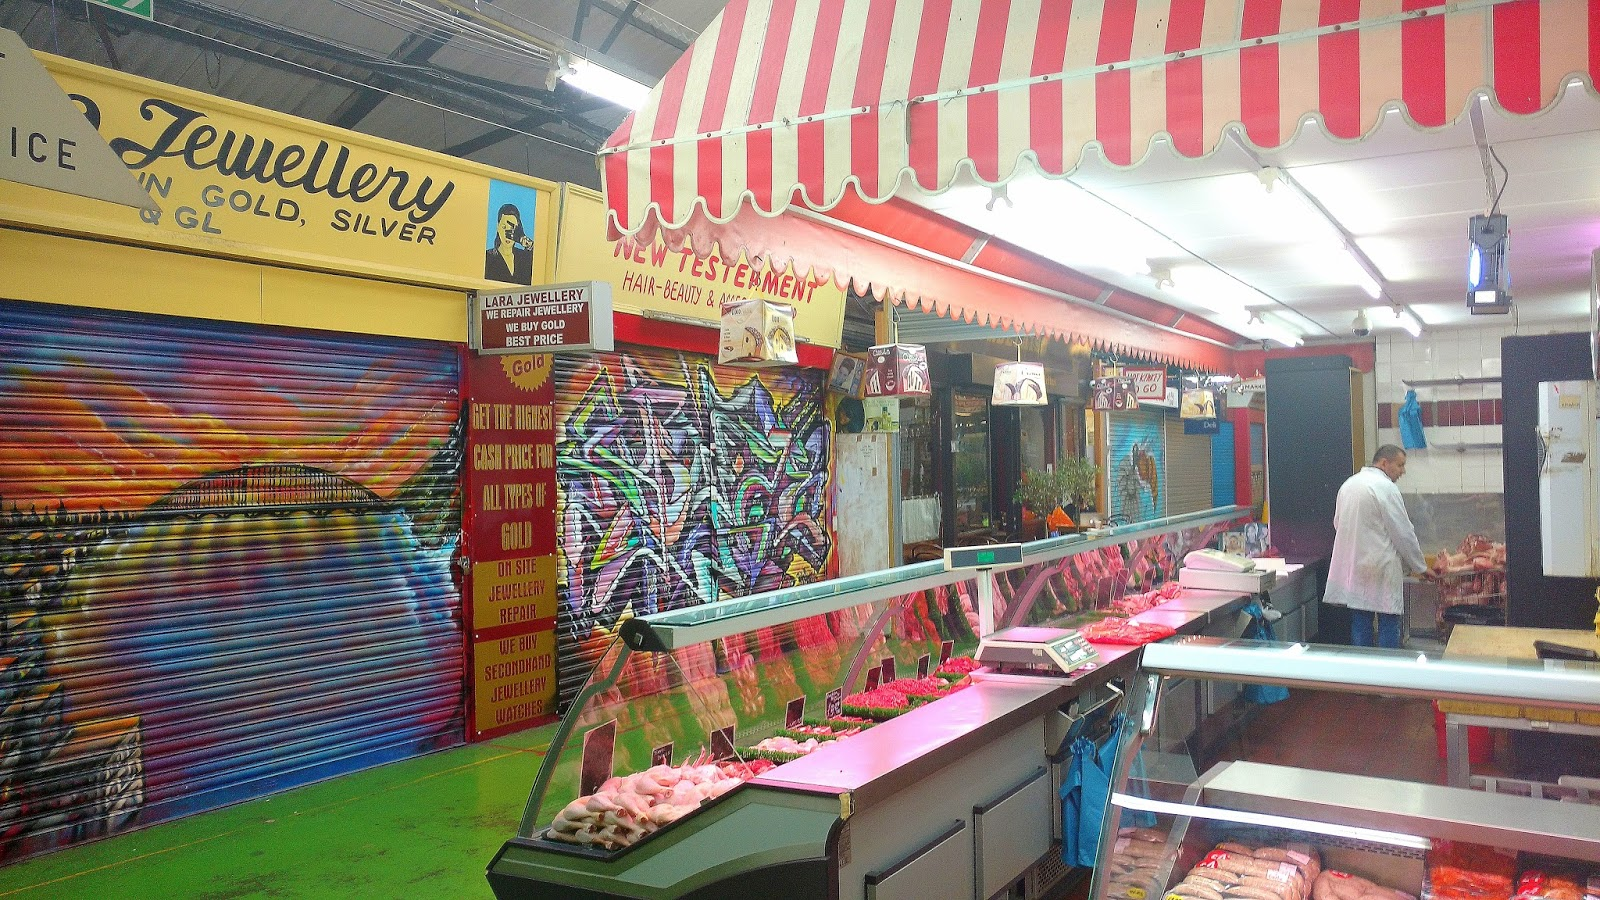 Tooting Market, which is a key food .hub for the local community.